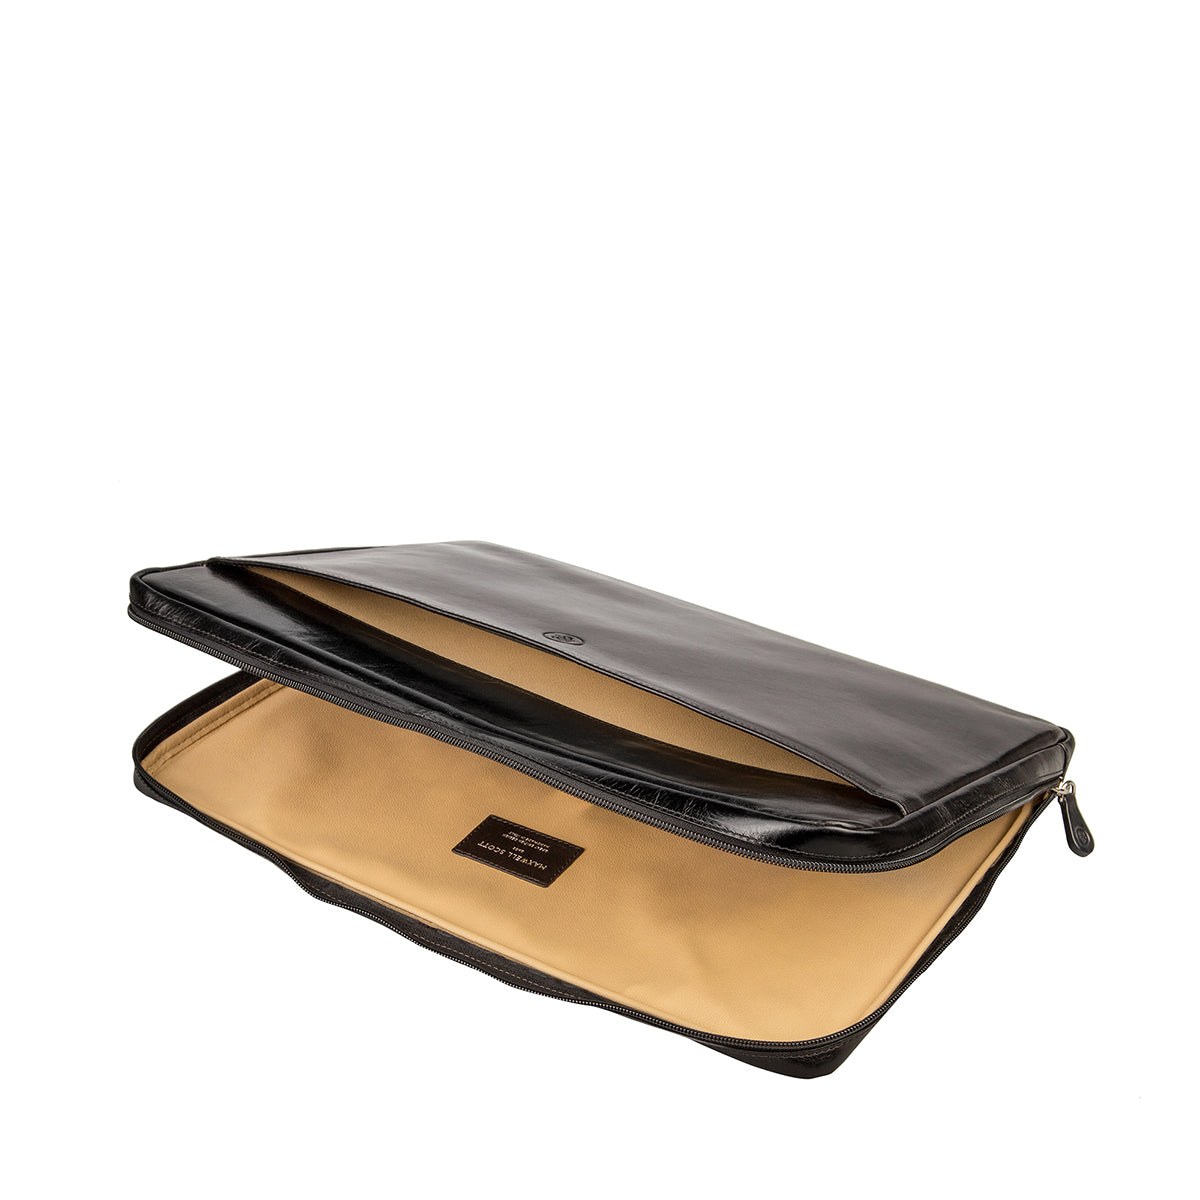 Image 5 of the 'Davoli' 17 Inch Black Veg-Tanned Leather Laptop Bag